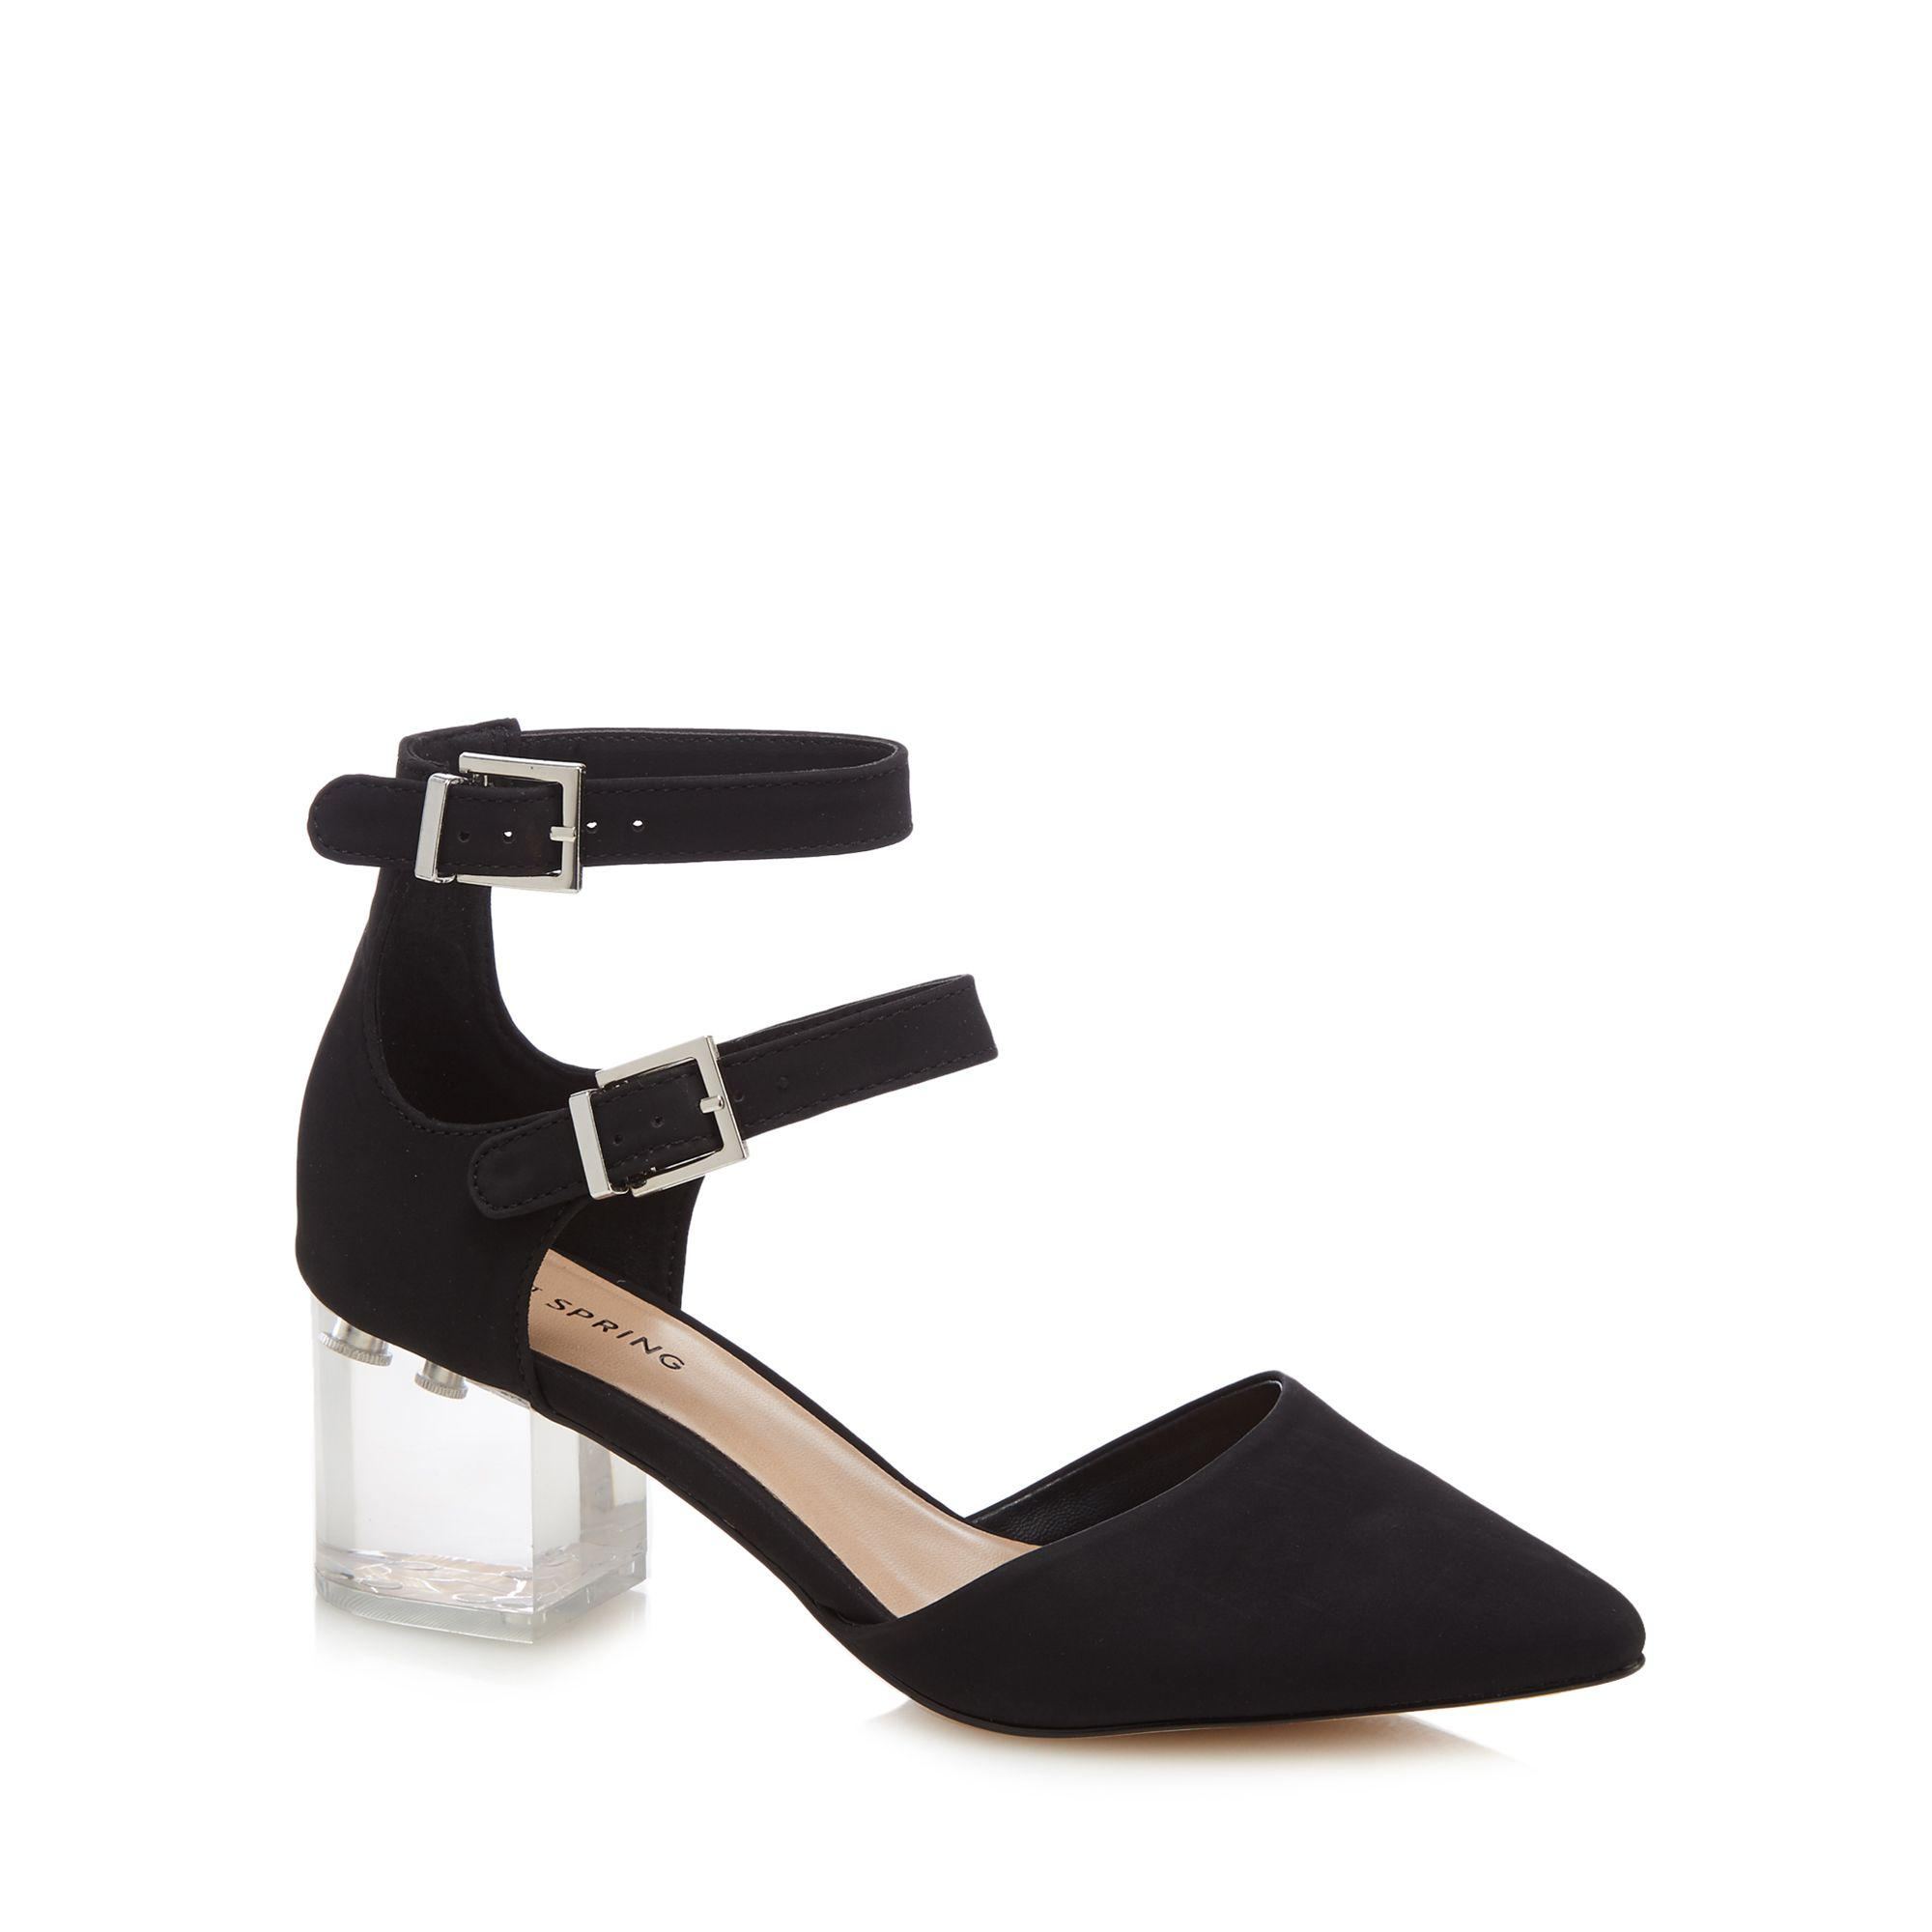 04c817a181f Call It Spring Black Suedette 'larerawiel' Mid Block Heel Pointed Shoes